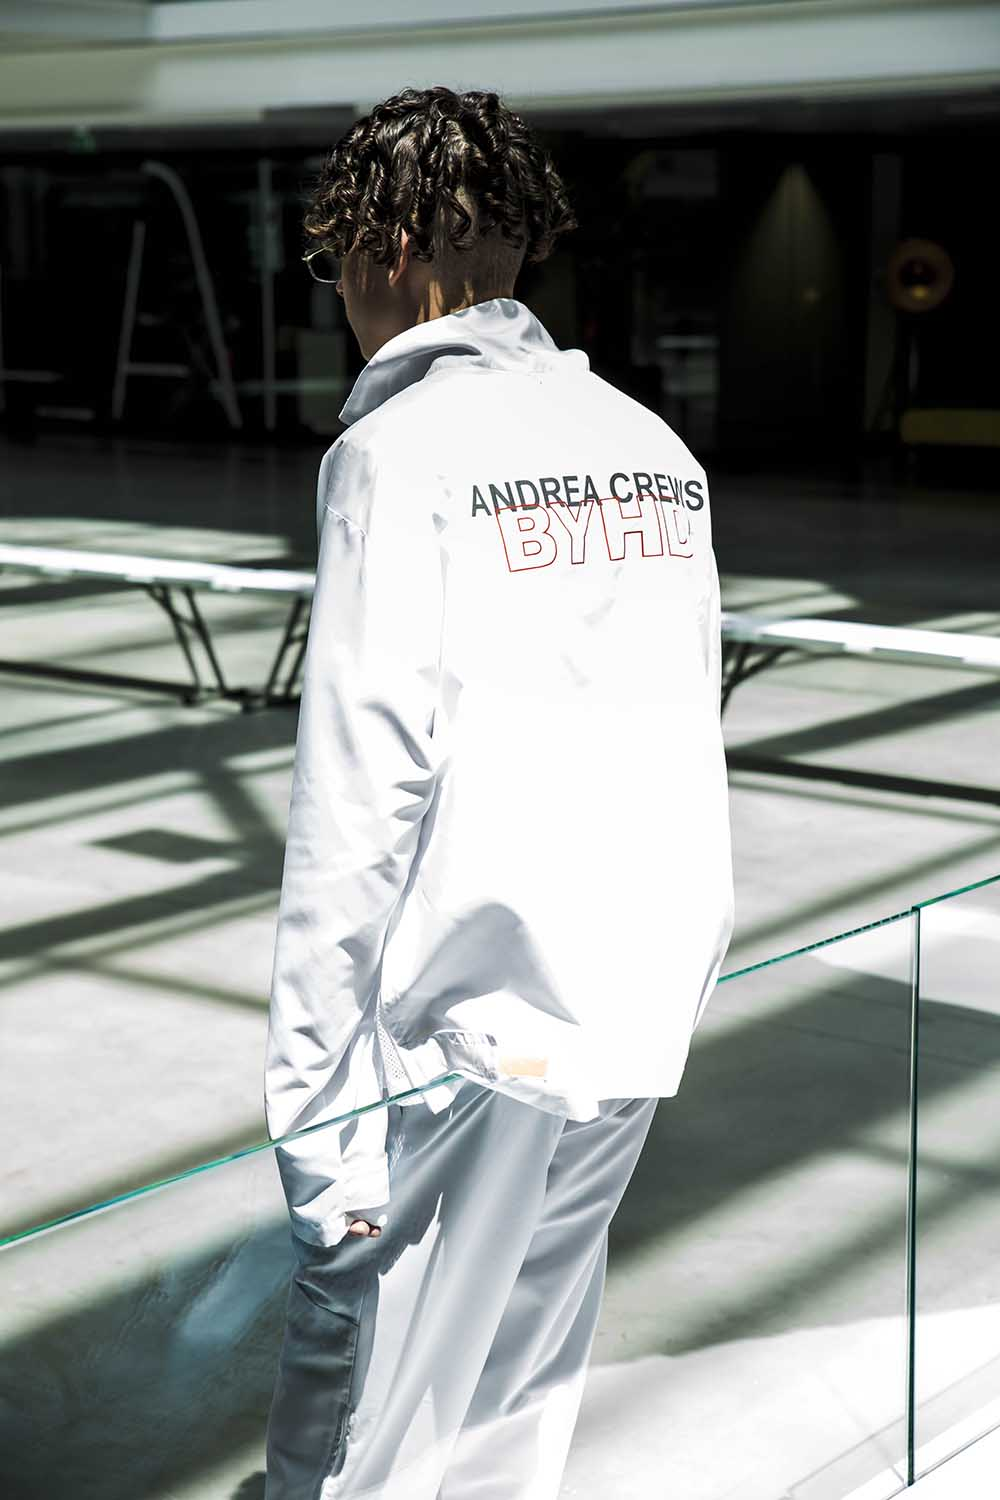 Andrea Crews Spring Summer 2019 fashion show in Paris at Paris Fashion Week (PFW). Sagaboi.com. Model backstage at the Andrea Crews show.